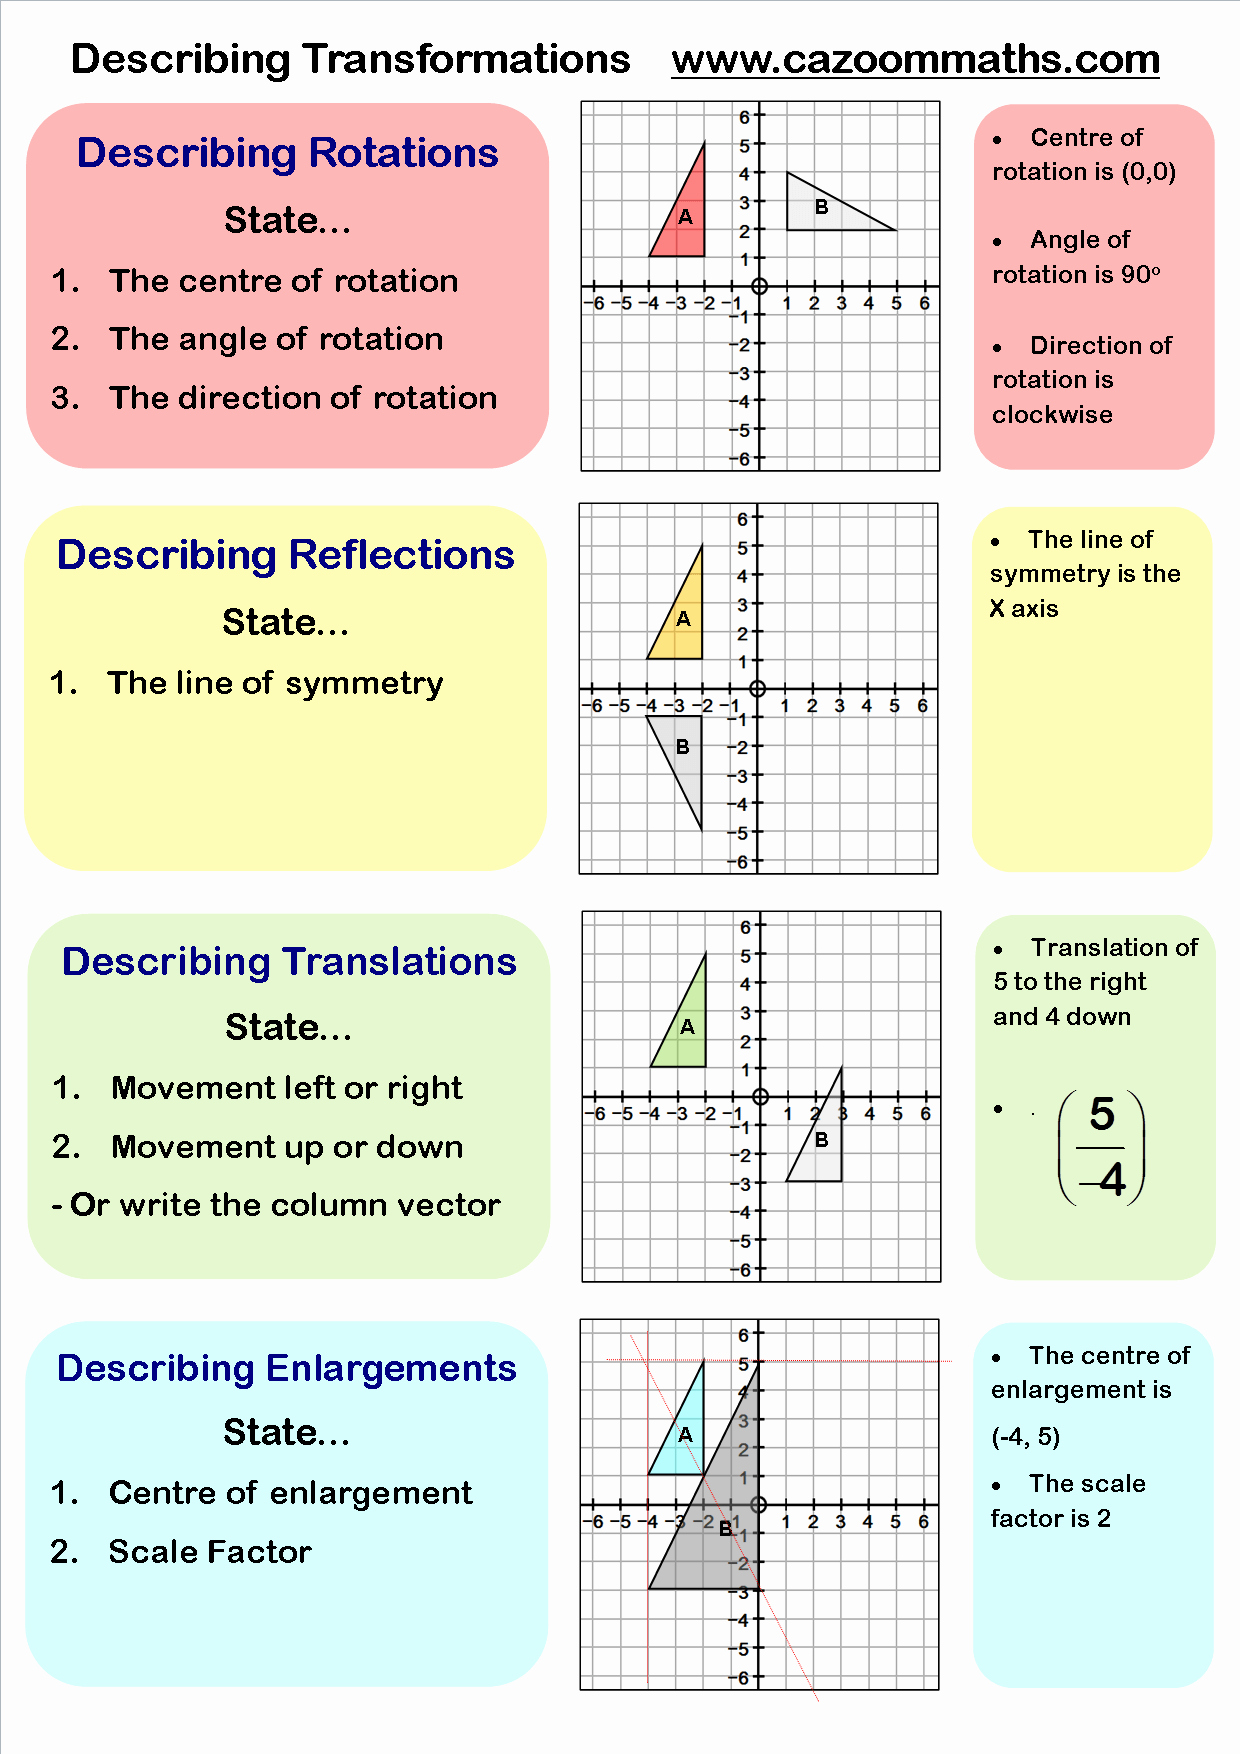 Geometry Transformations Worksheet Answers New Cazoom Maths Worksheets Maths Worksheets